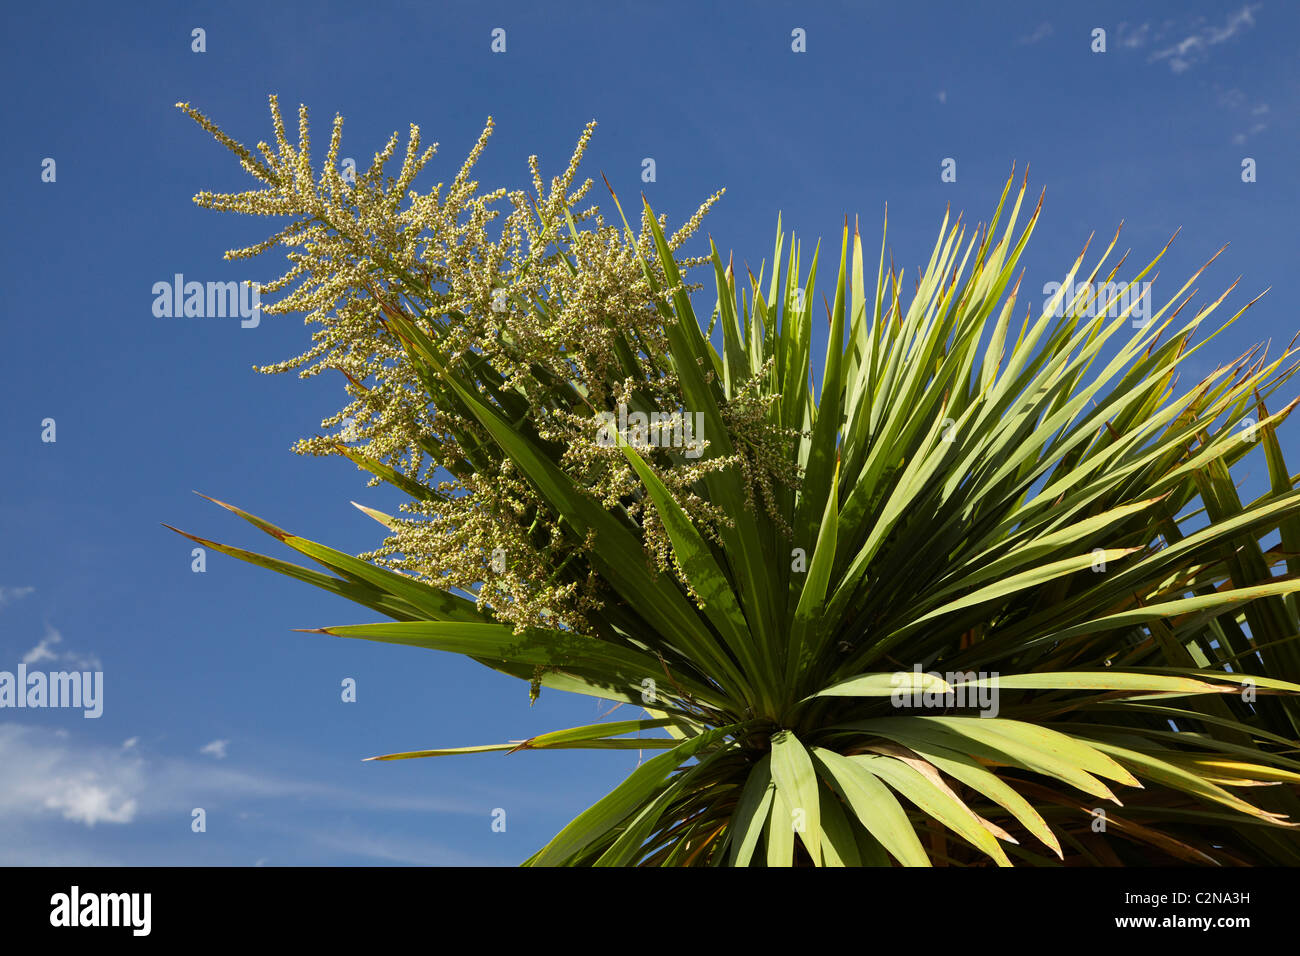 Cabbage Tree In Flower Cordyline Australis Central Otago South Stock Photo Alamy